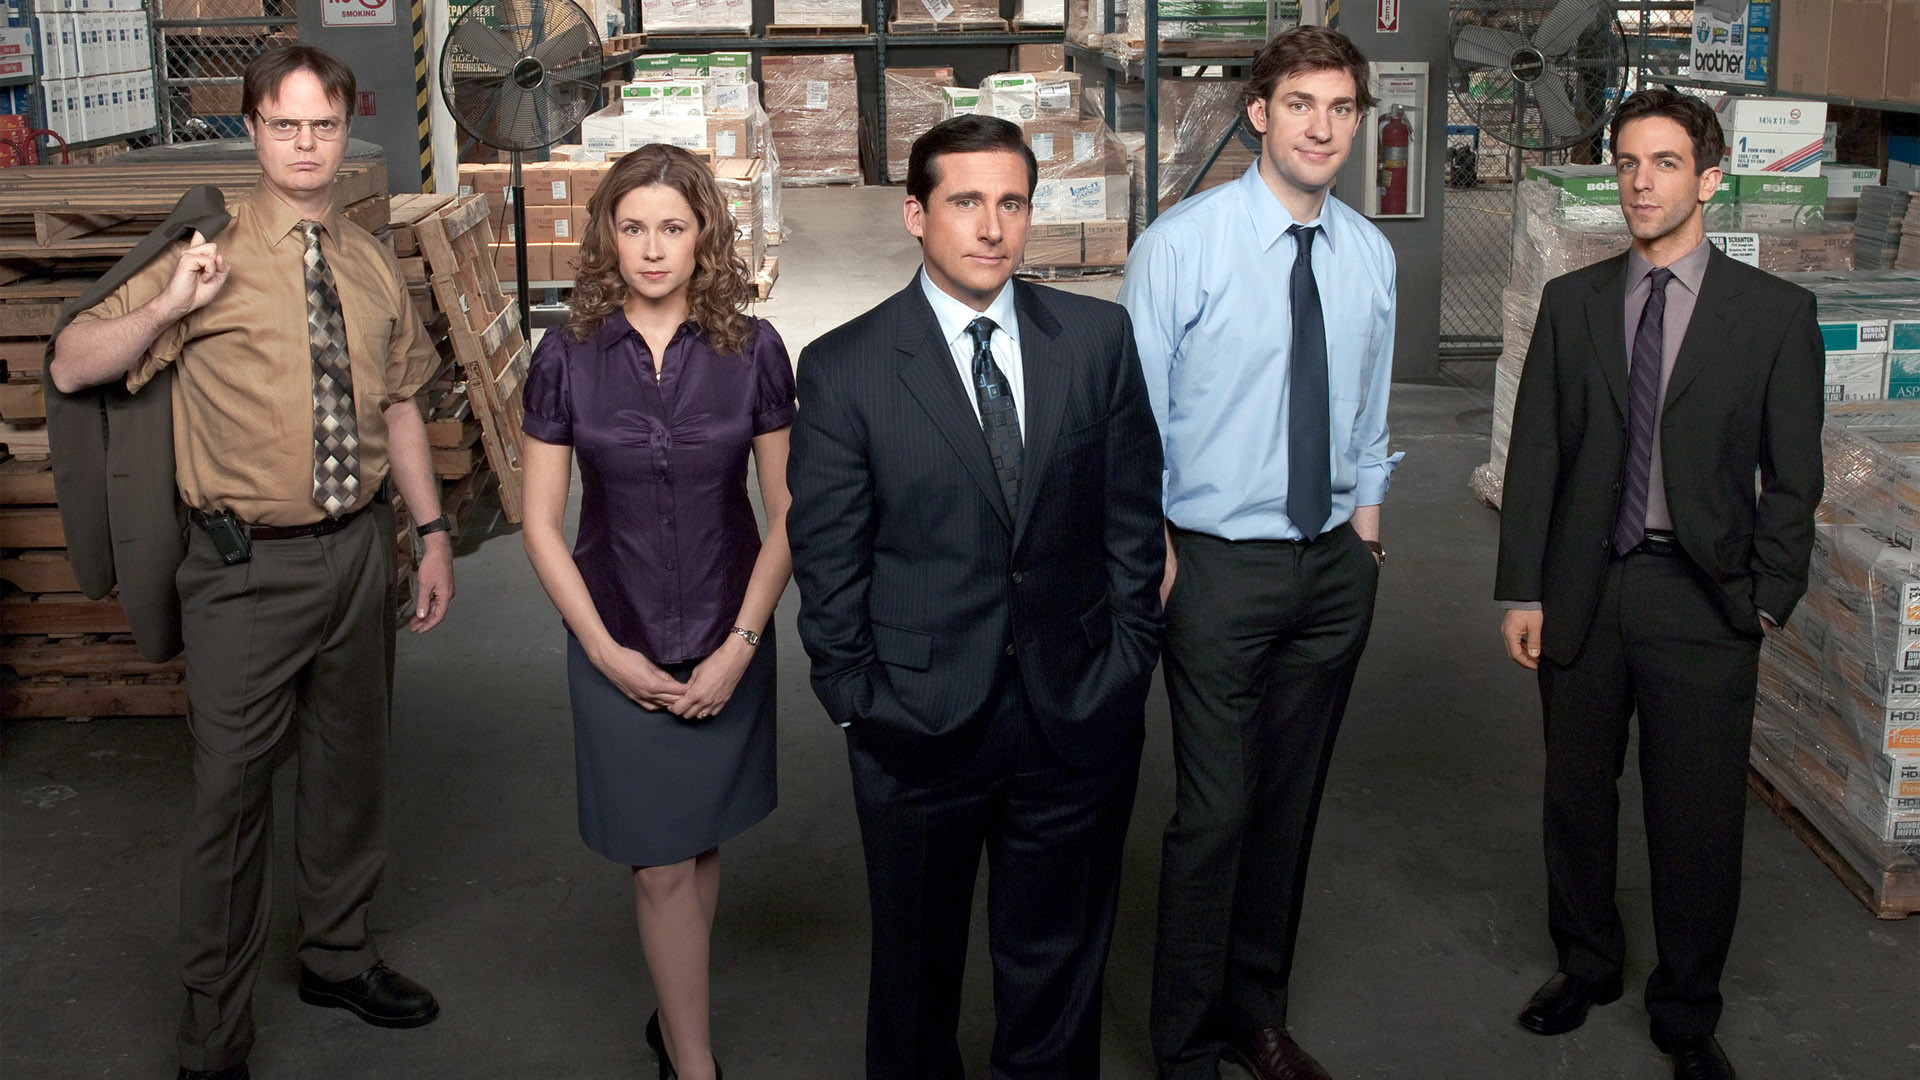 the office hd wallpaper 68628